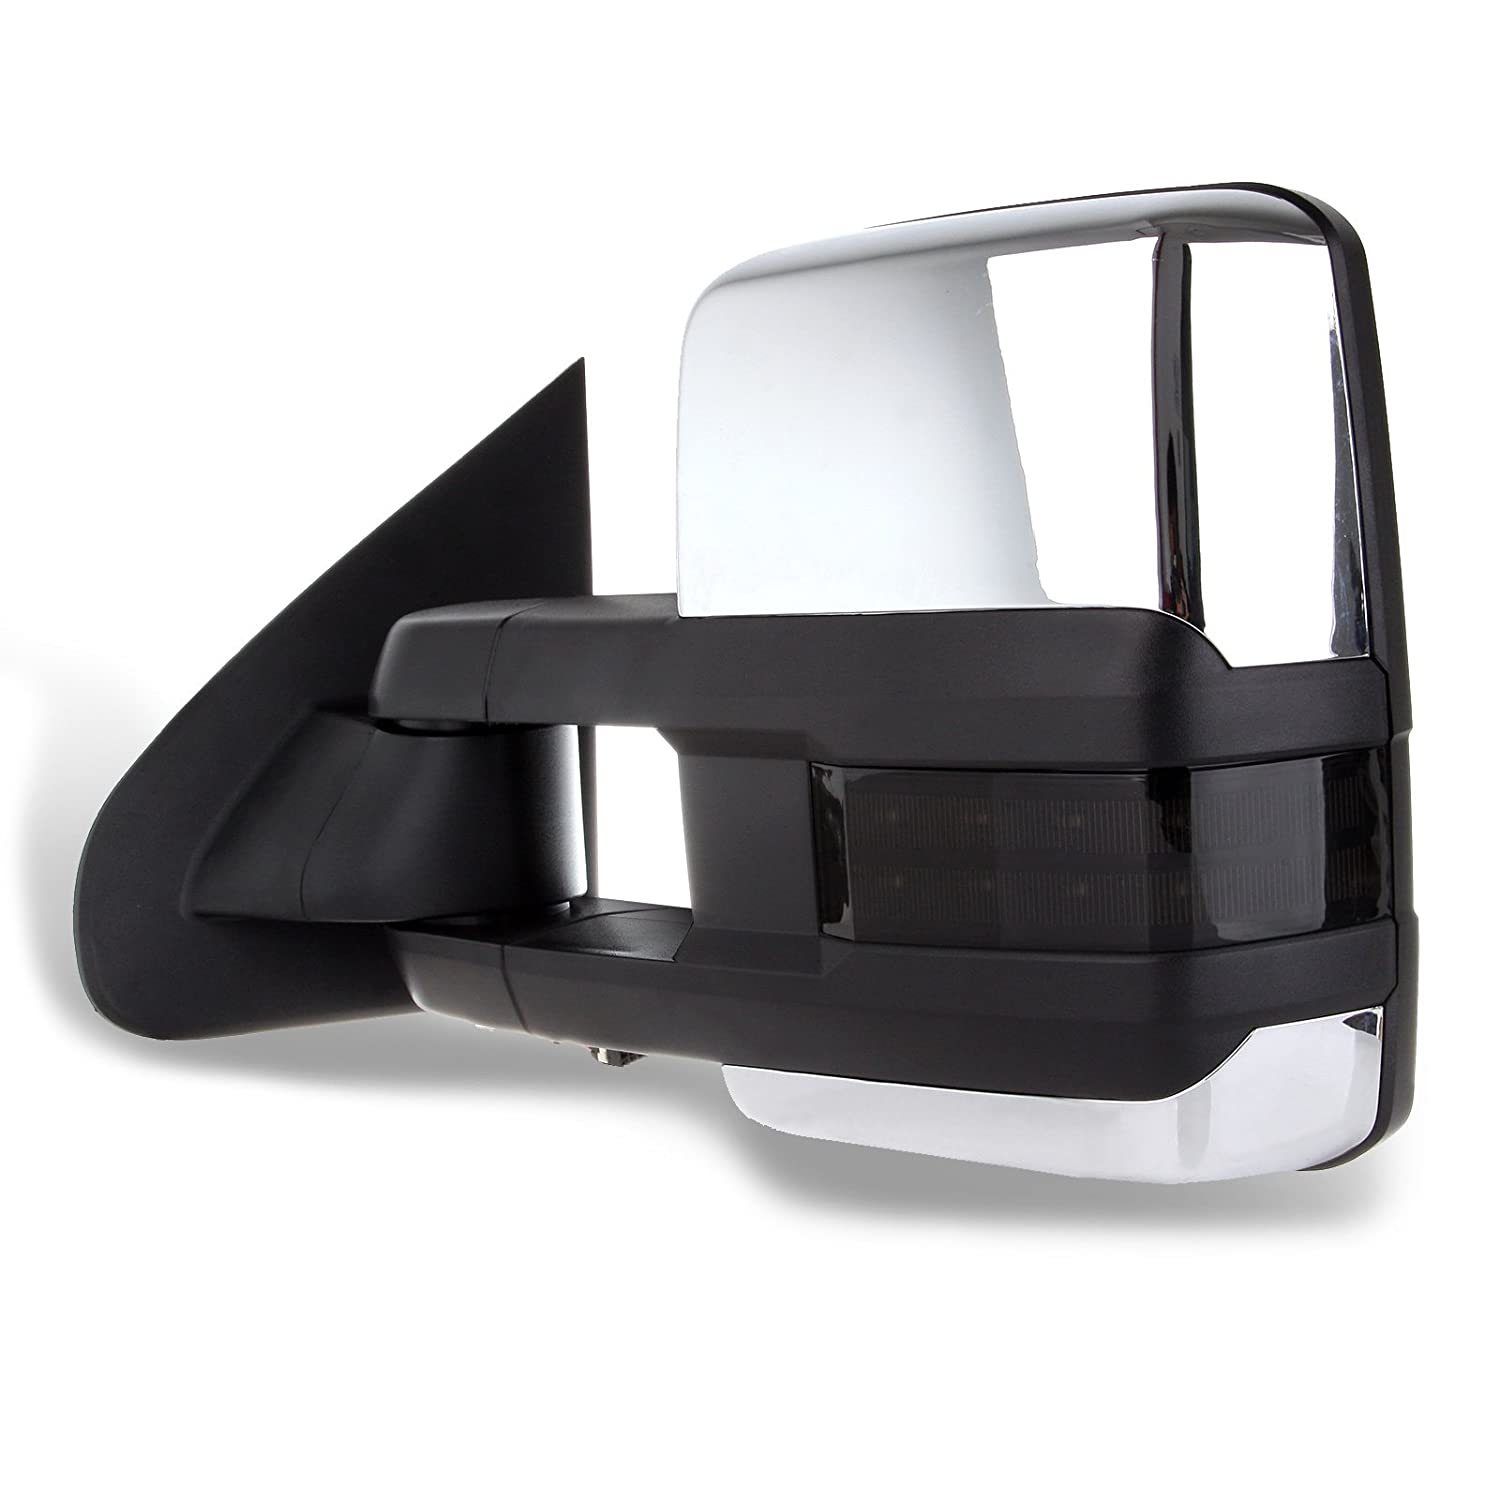 INEEDUP Tow Mirrors Rearview Mirrors Fit for 2014-2018 Chevy Silverado GMC Sierra 1500 Chevy Silverado 2500 HD 3500 HD with Left Right Side Power Operation Heated with Turn Signal Light